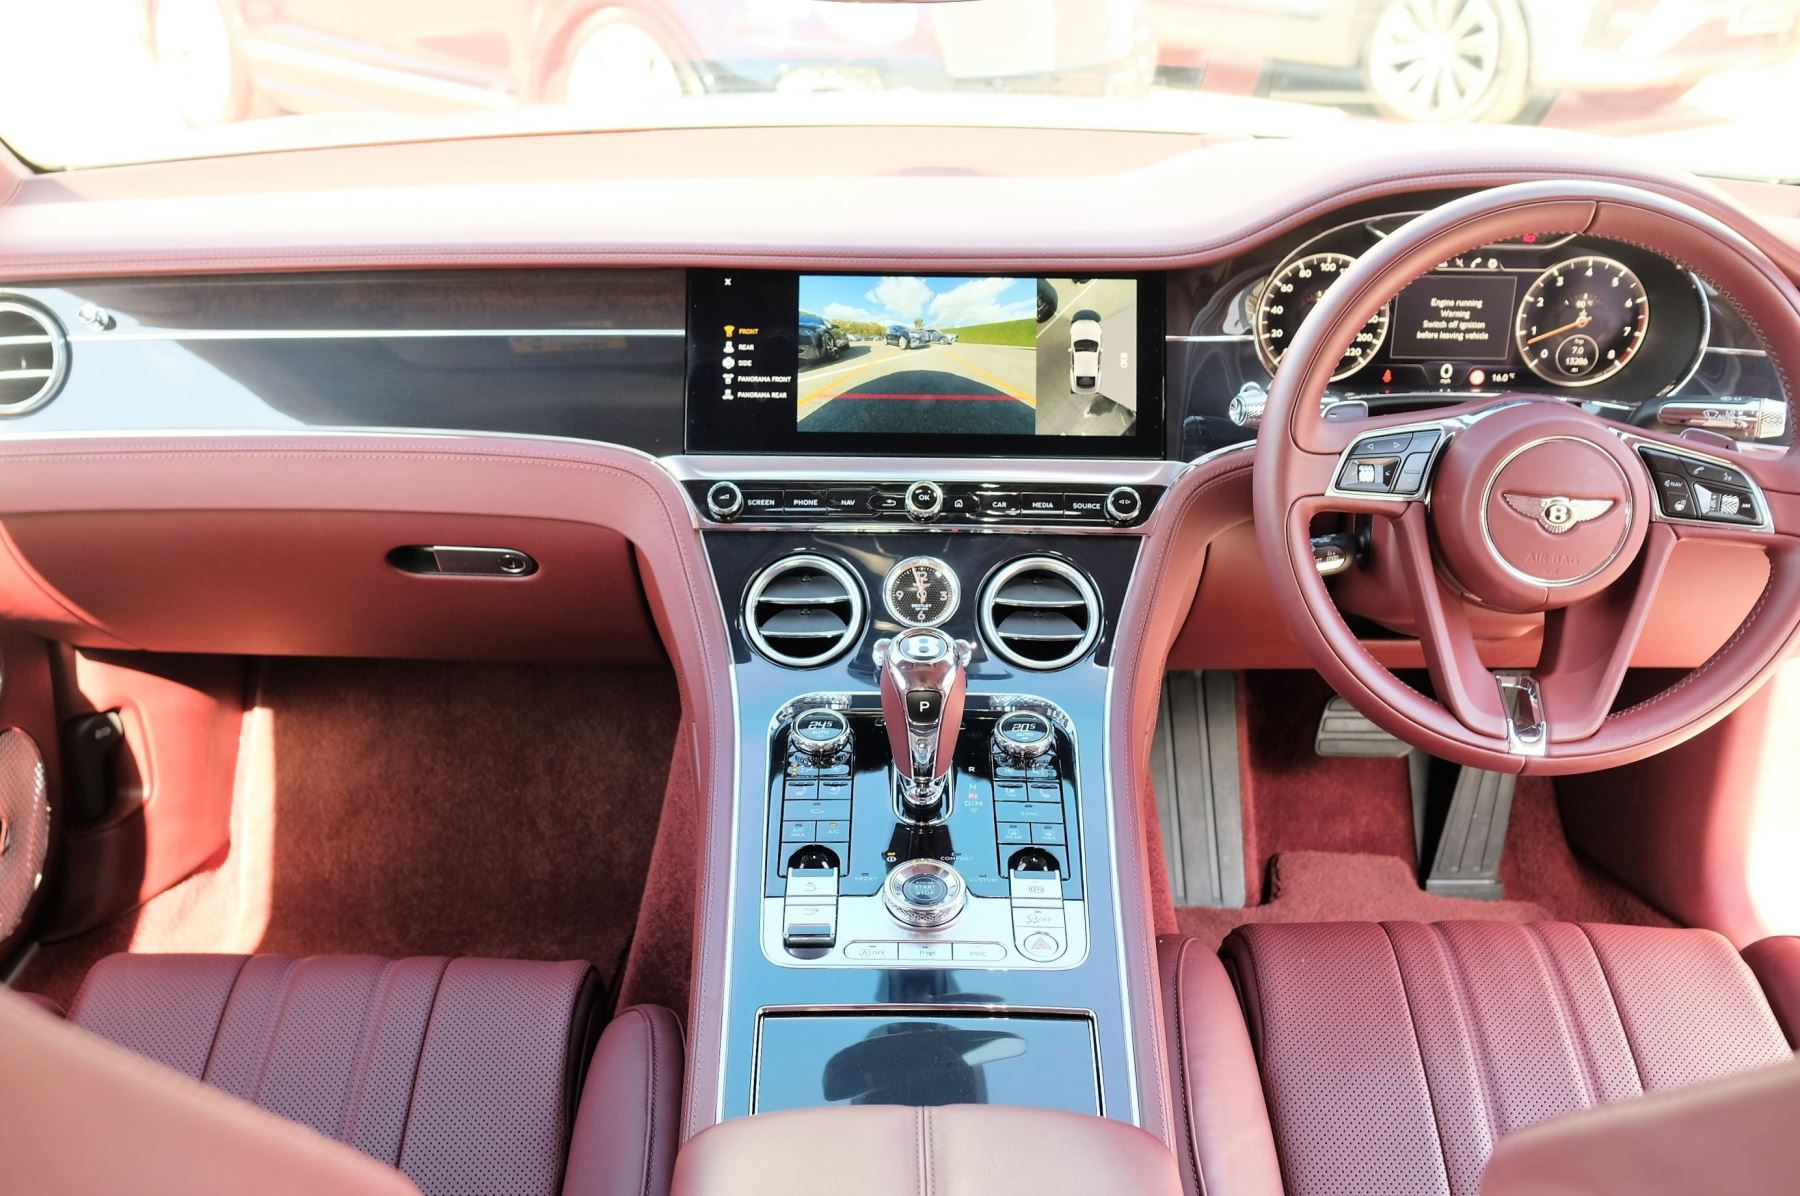 Bentley Continental GT 6.0 W12 Centenary, City and Touring Specification image 13